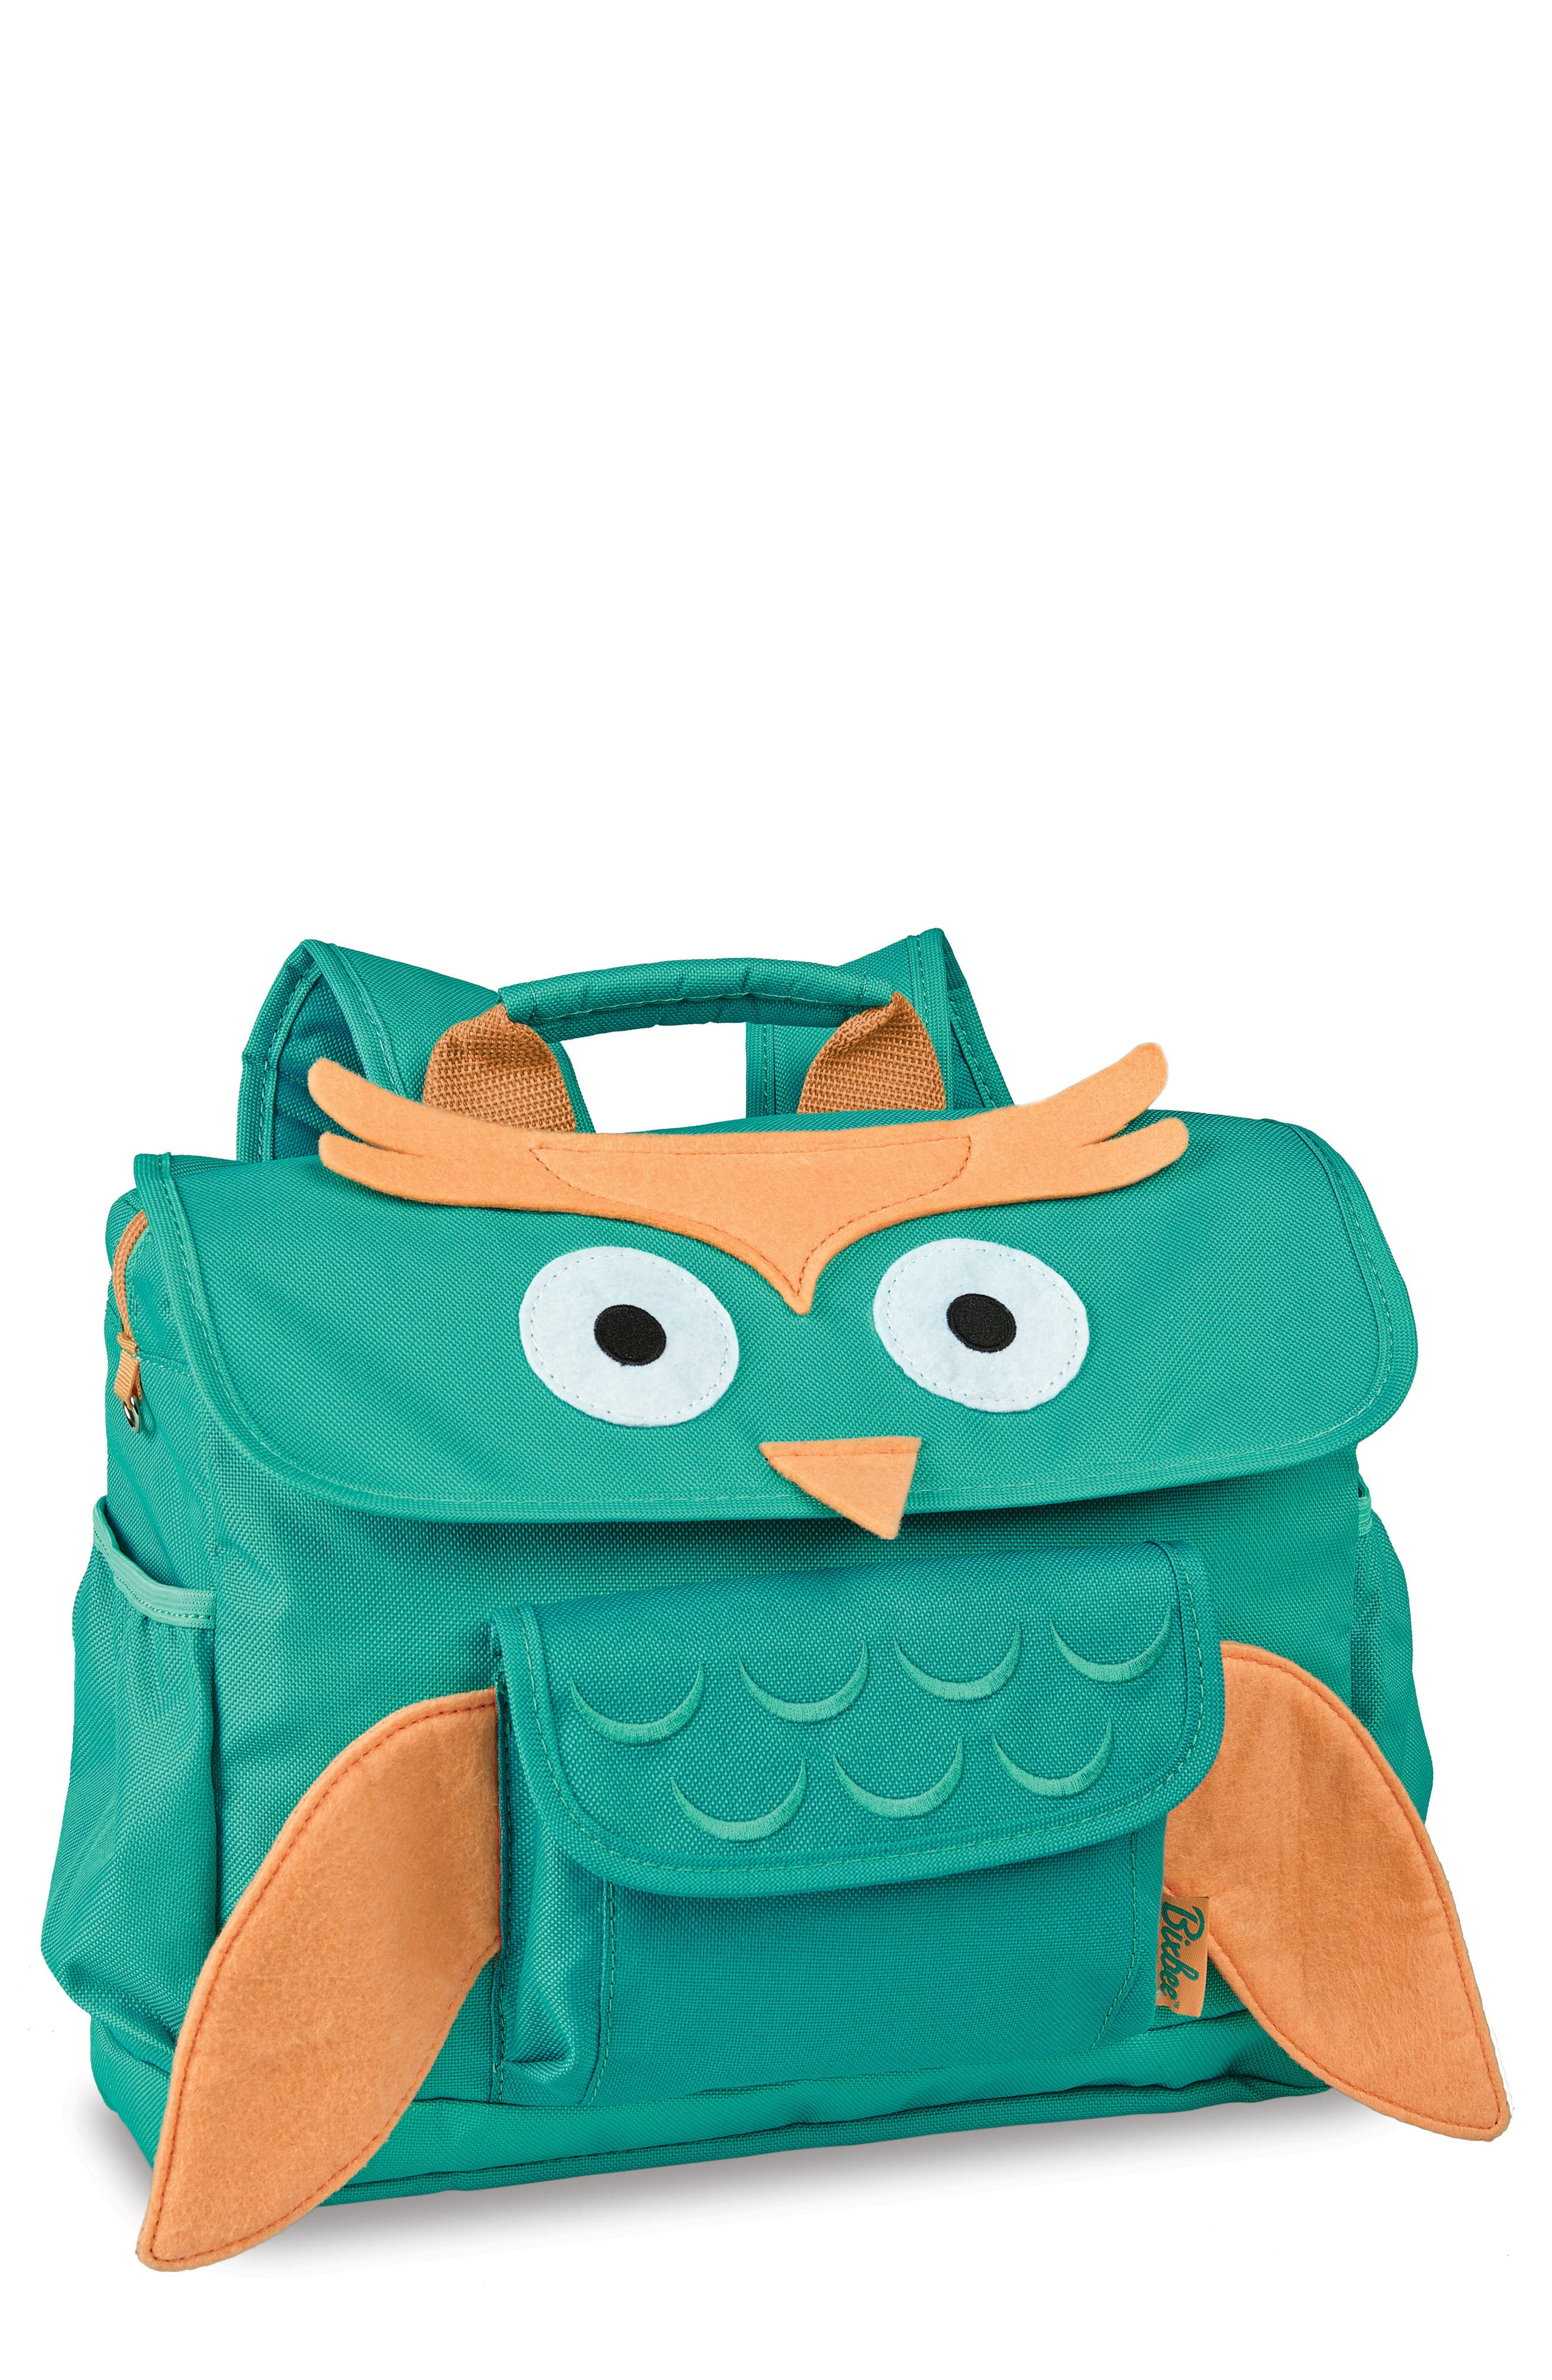 Animal Pack – Owl Backpack,                         Main,                         color, Teal